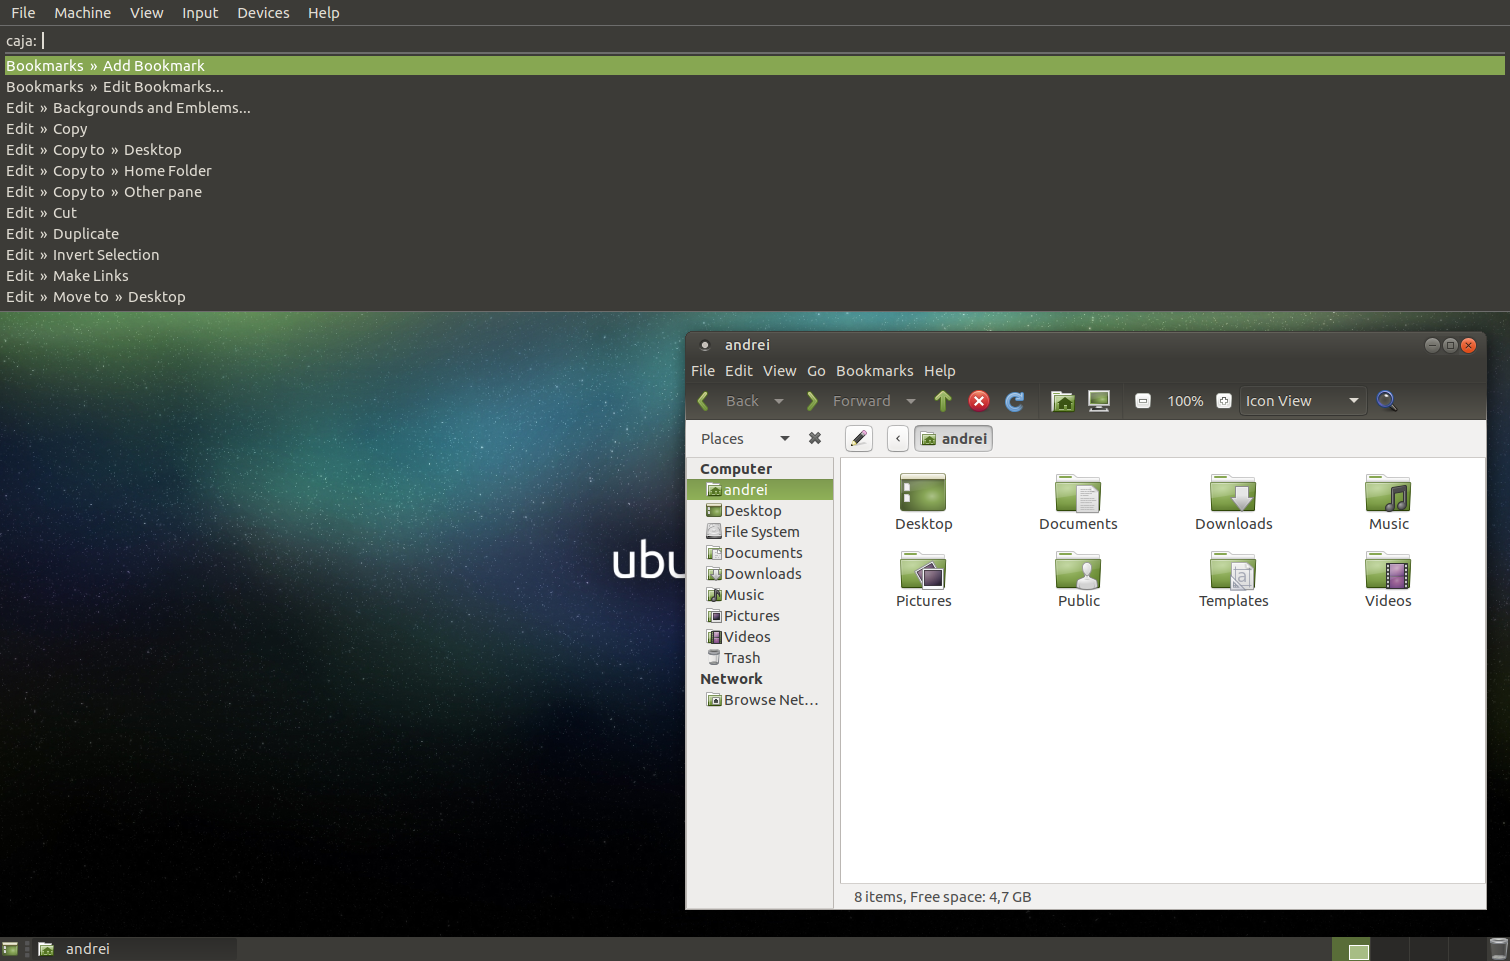 Ubuntu MATE 16 10 Yakkety Yak Gets A Unity HUD-Like Searchable Menu